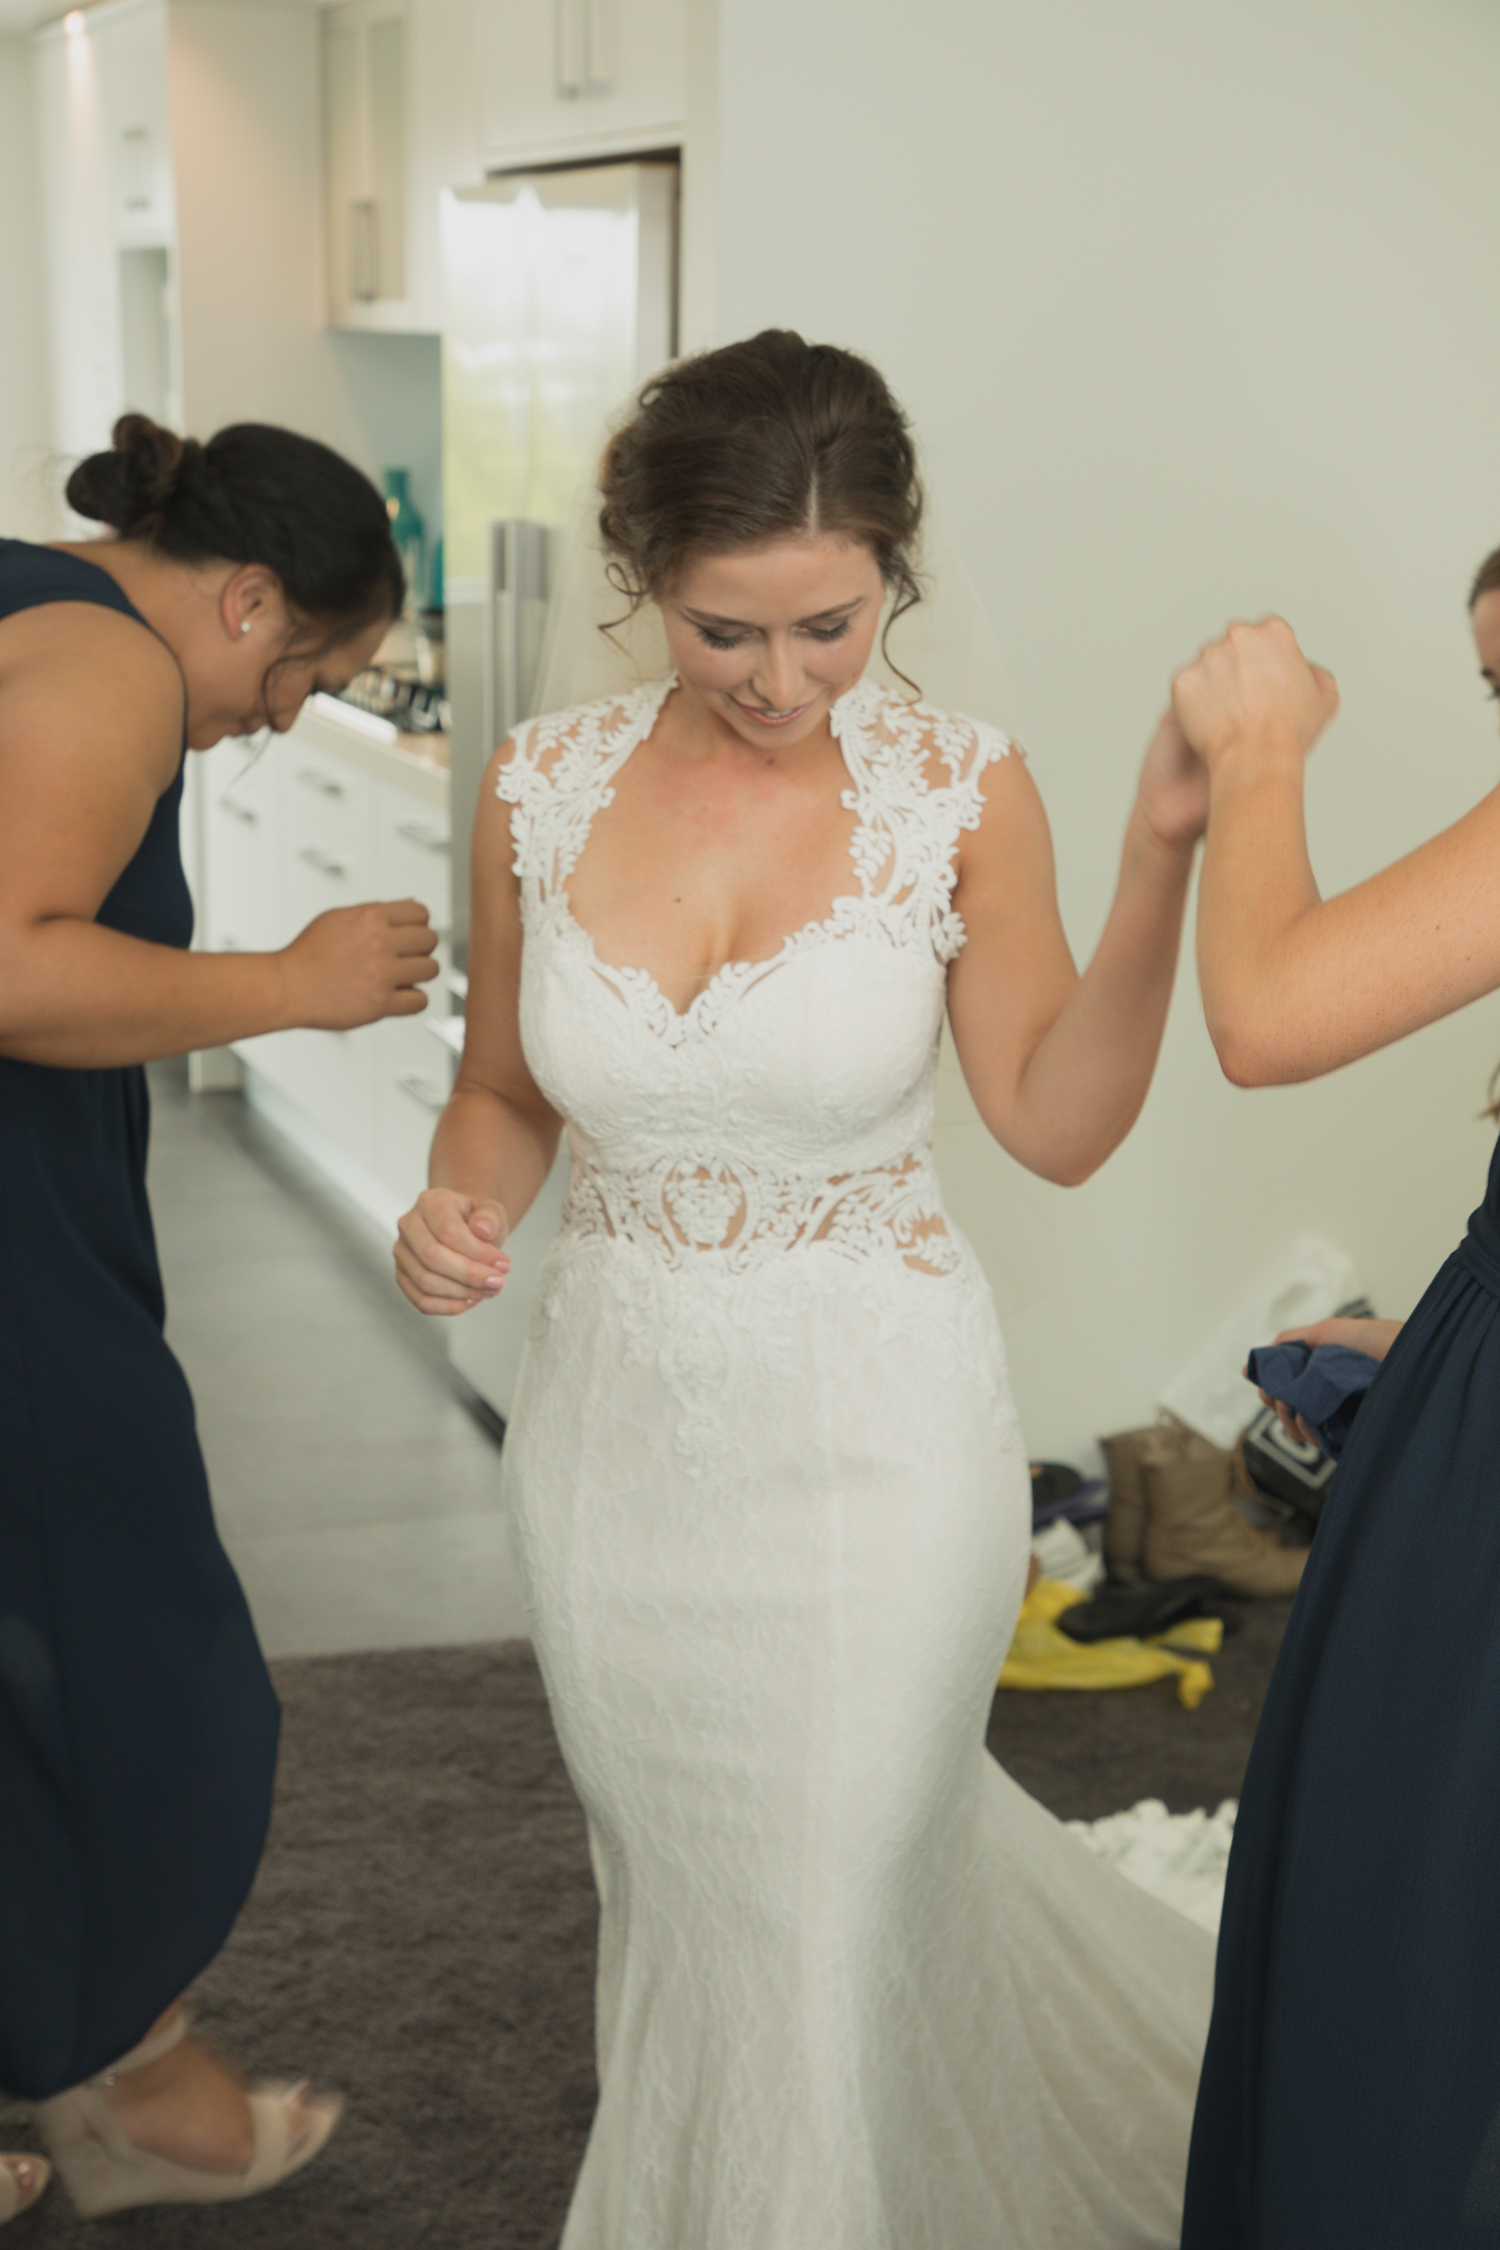 bride-showing-bridesmiads-dress-for-first-time.jpg